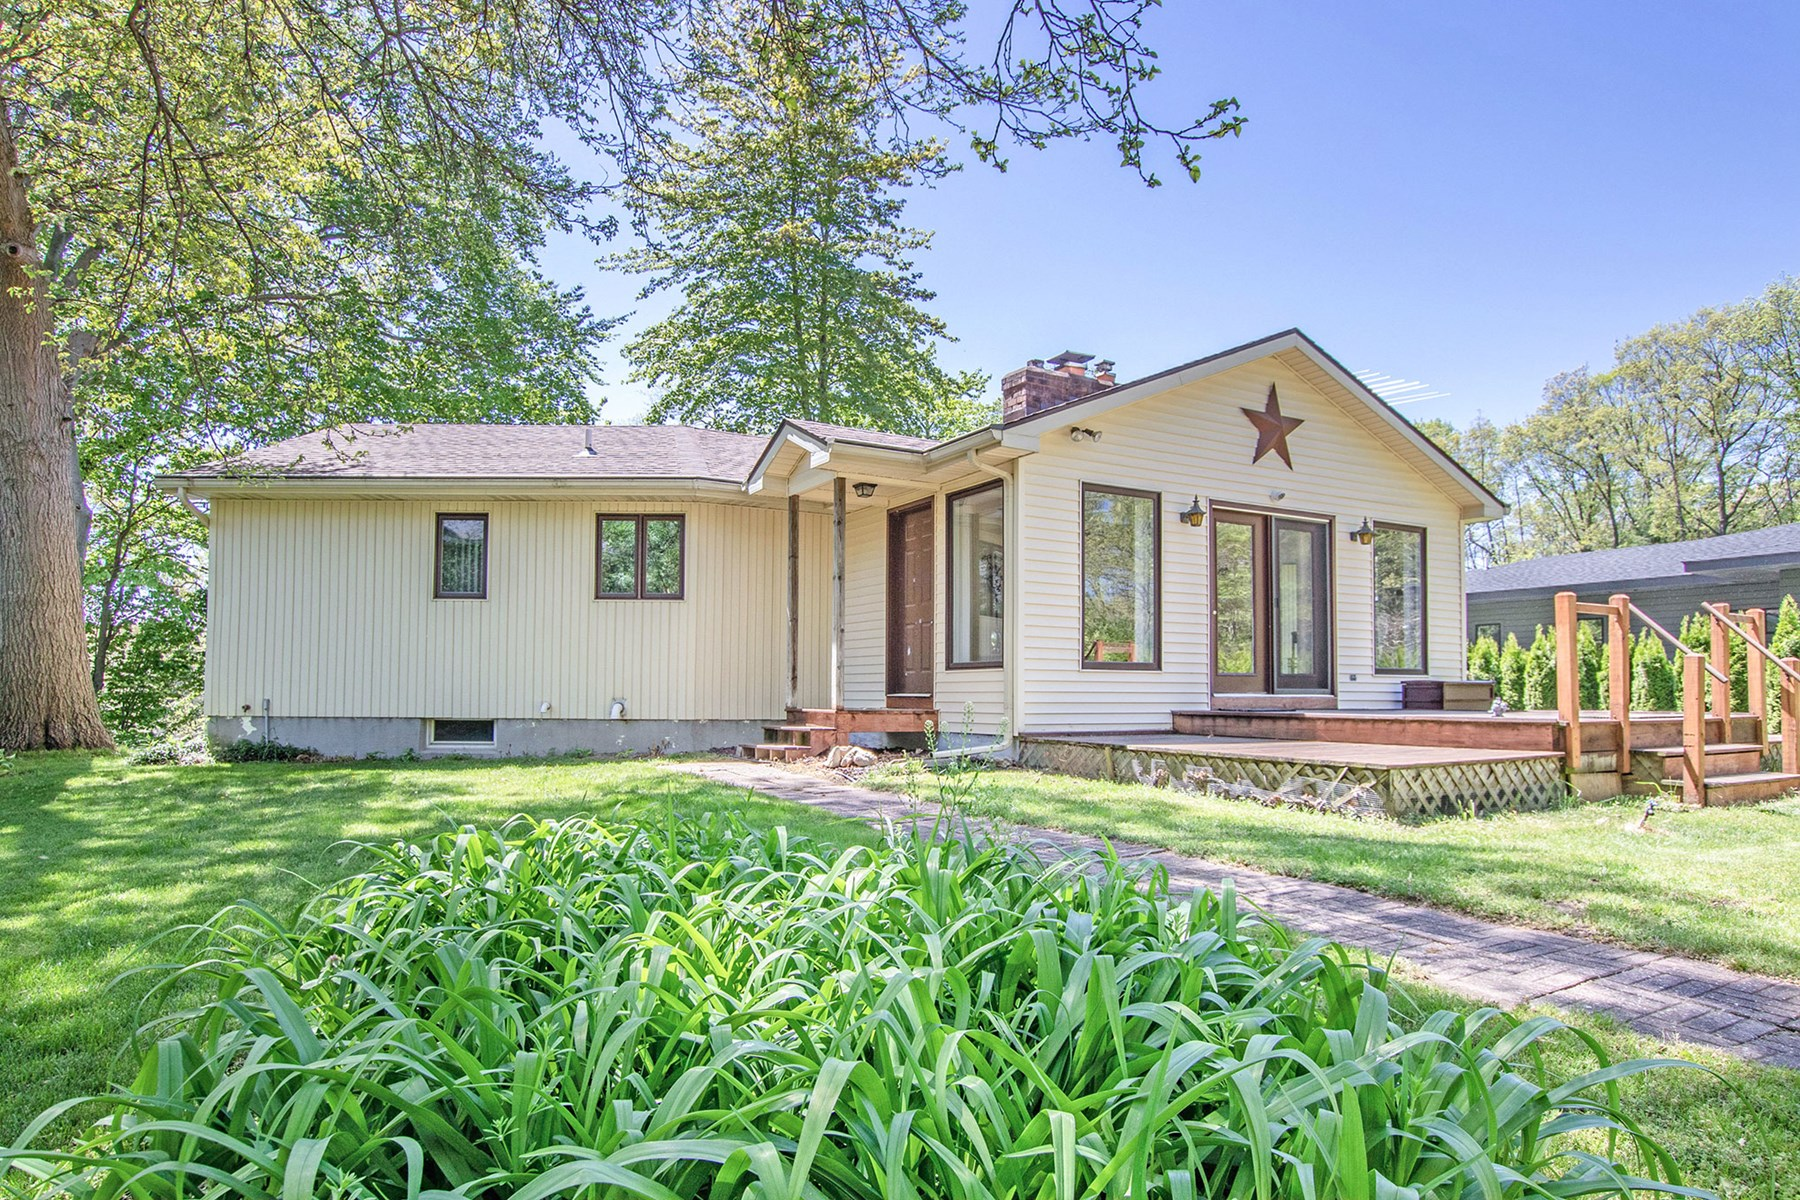 Home on Silver Lake - Minutes from Saugatuck & Douglas.